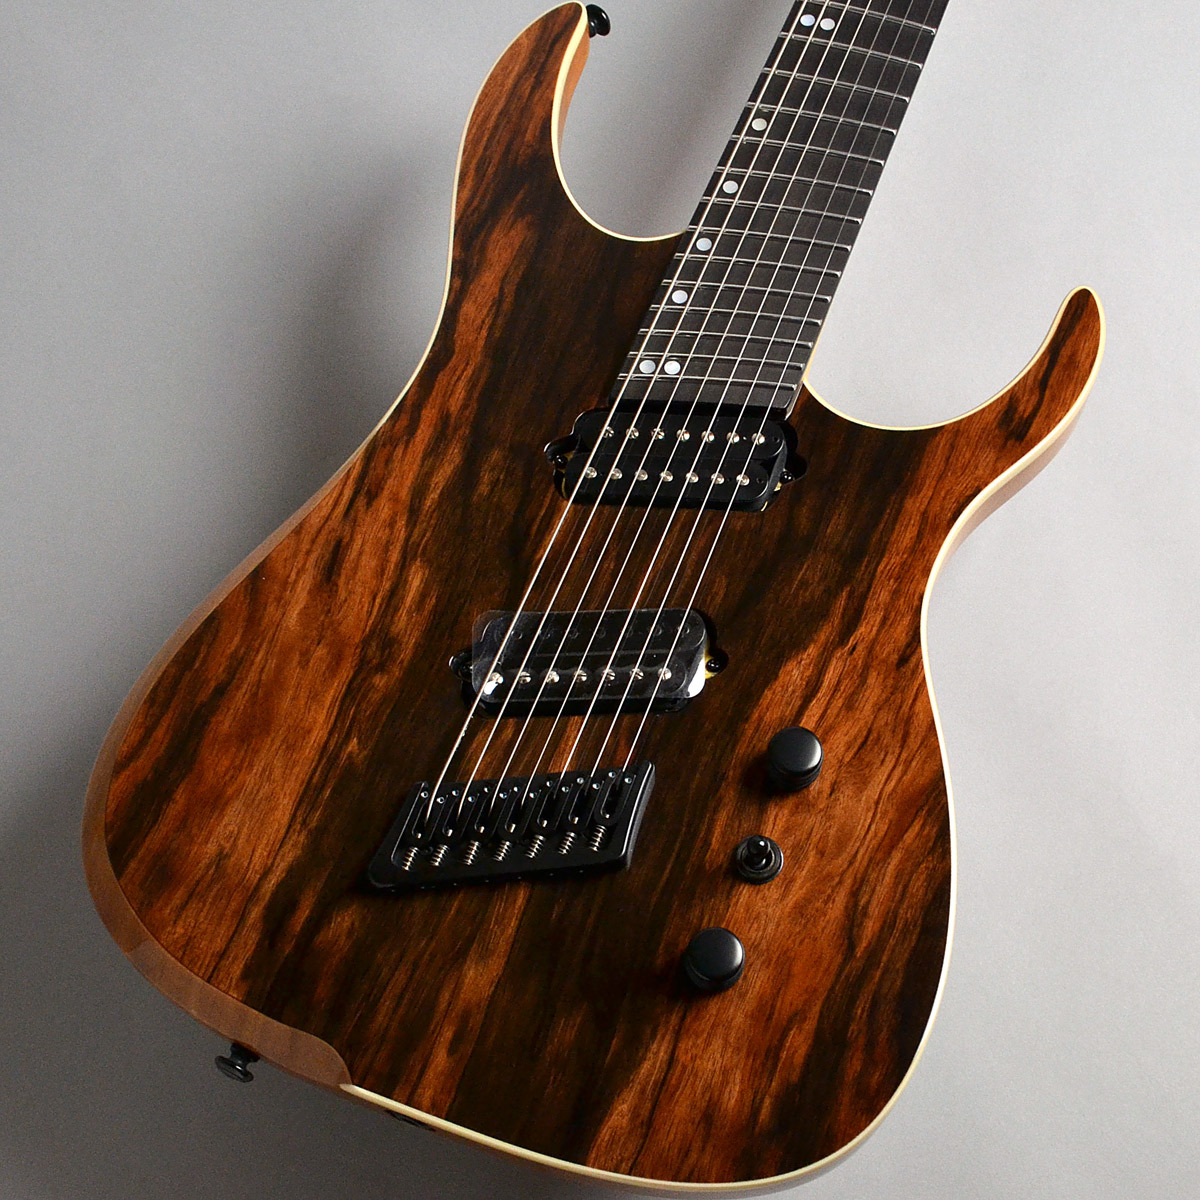 Ormsby Guitars Hype GTR7 MULTISCALE Macassar Ebony エレキギター(7弦) 【オームズビー】【新宿PePe店】